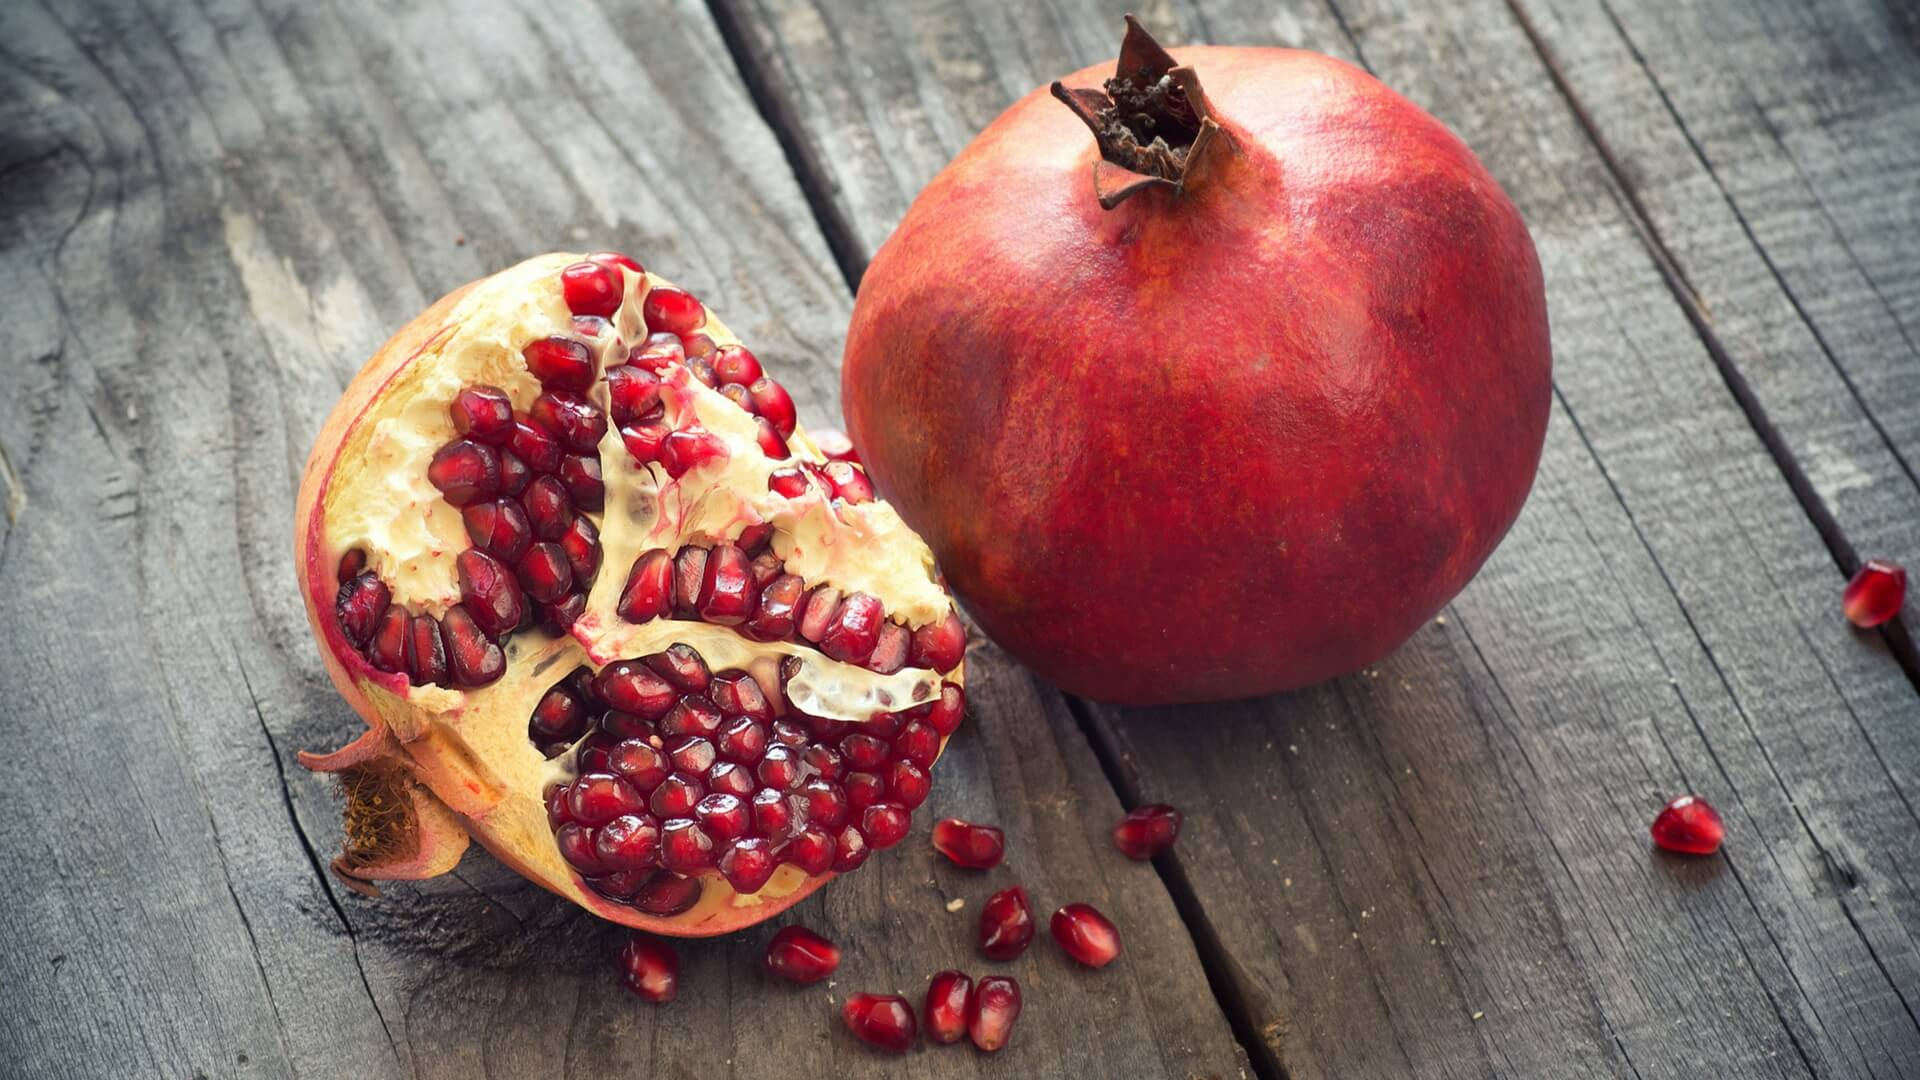 Can A Simple Pomegranate Ease RA Joint Point?